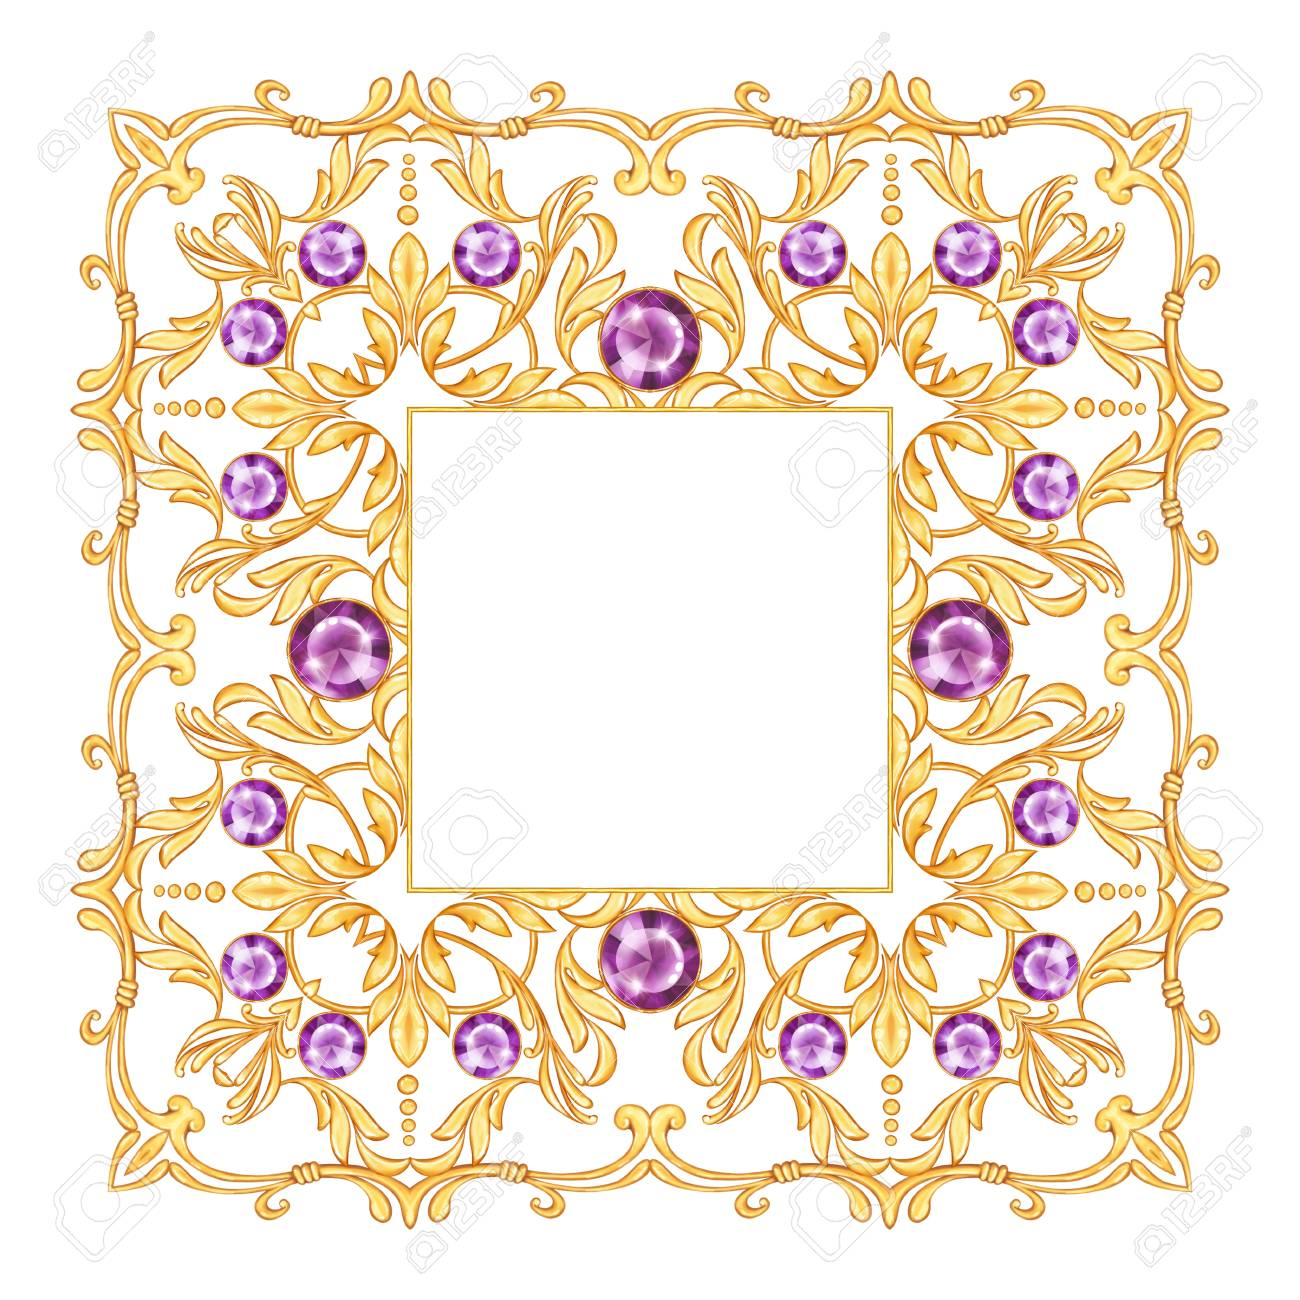 Golden Gewelry Frame With Decorative Scrolls And Gems